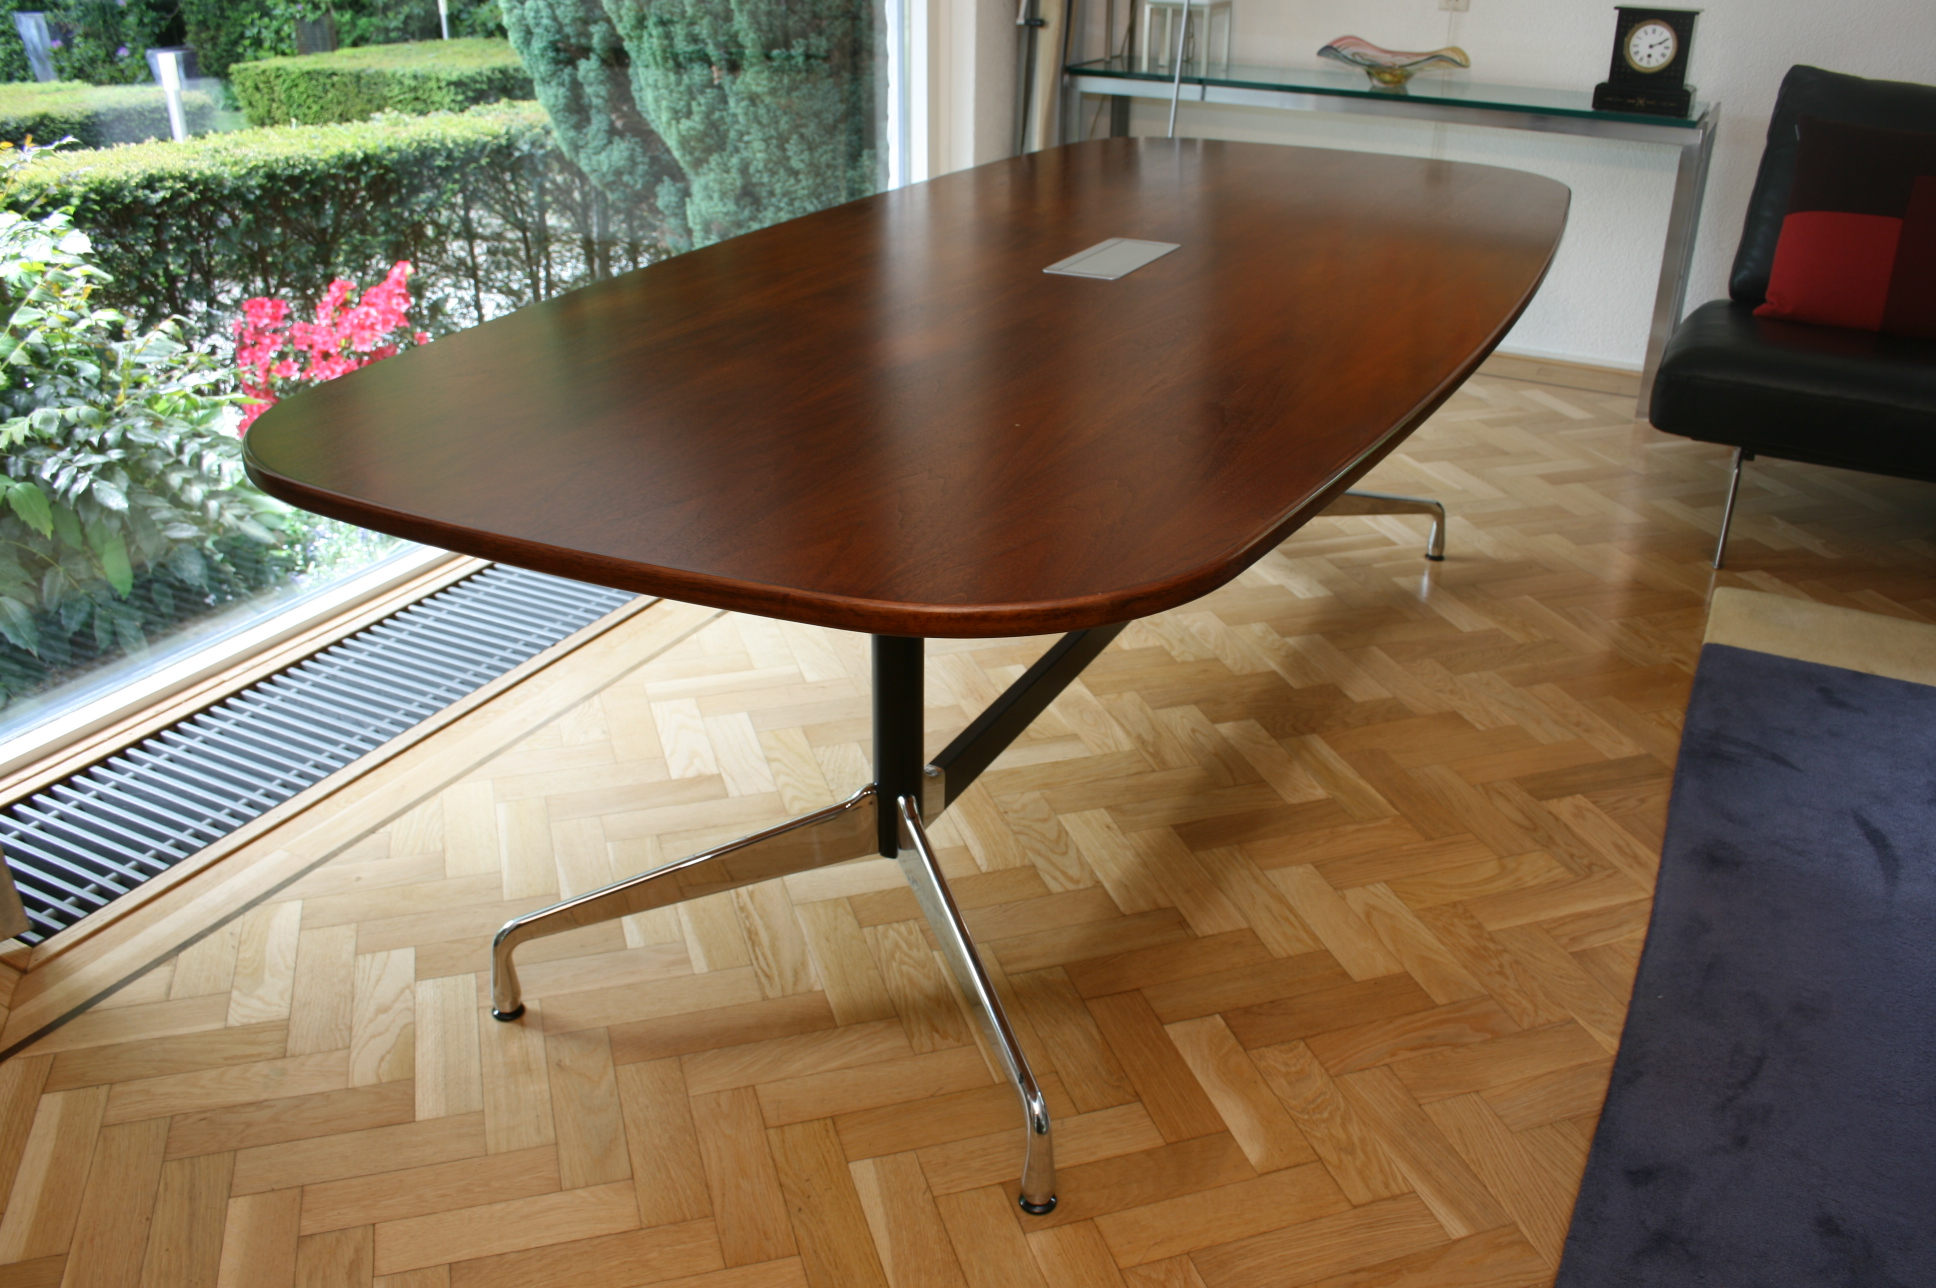 Vitra Segmented Table